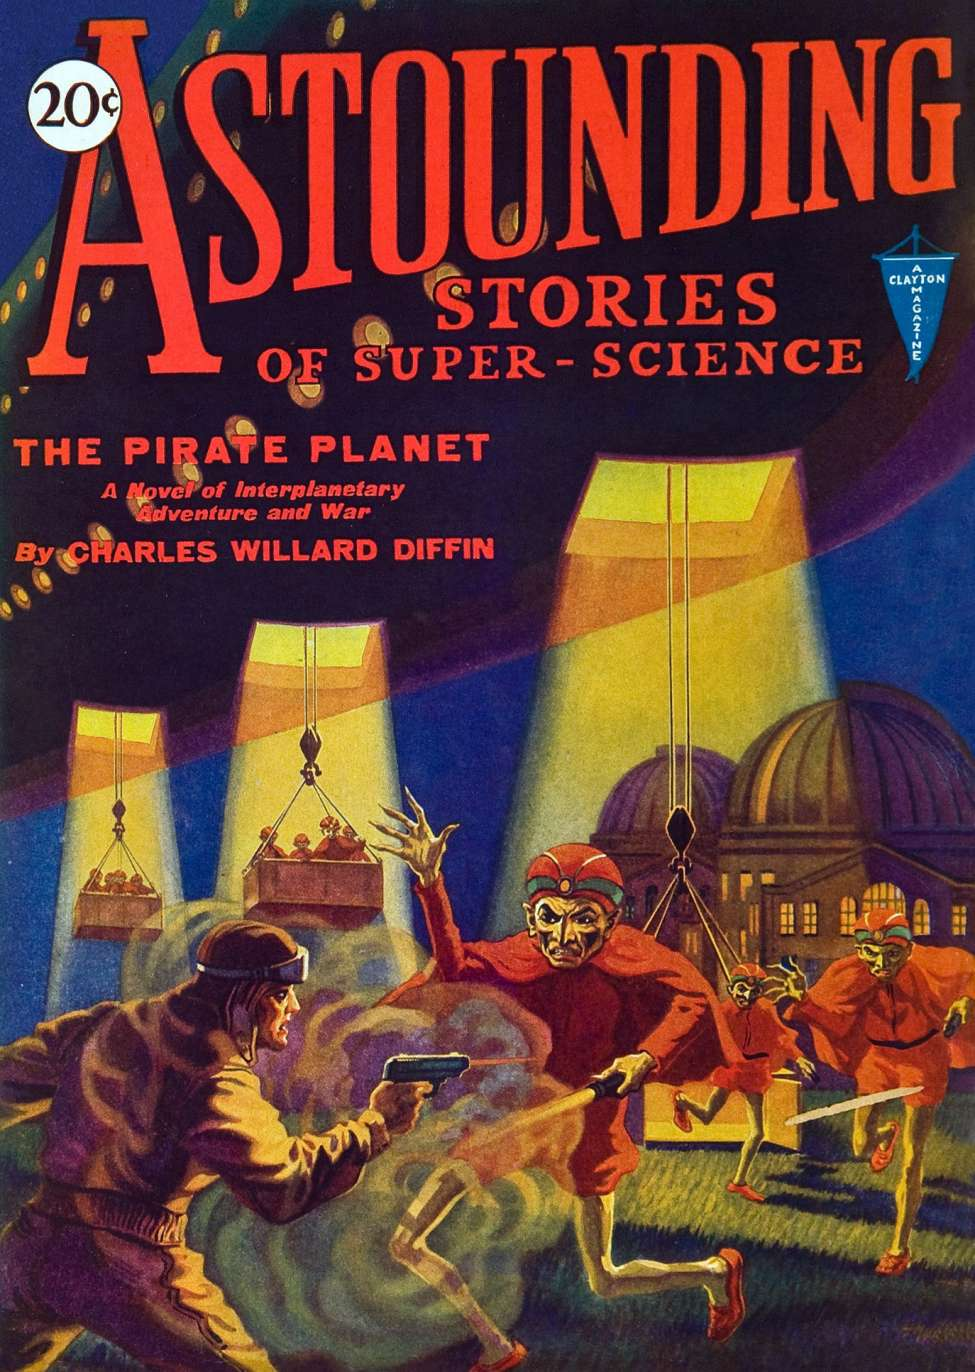 Comic Book Cover For Astounding Serial - The Pirate Planet - C W Diffin